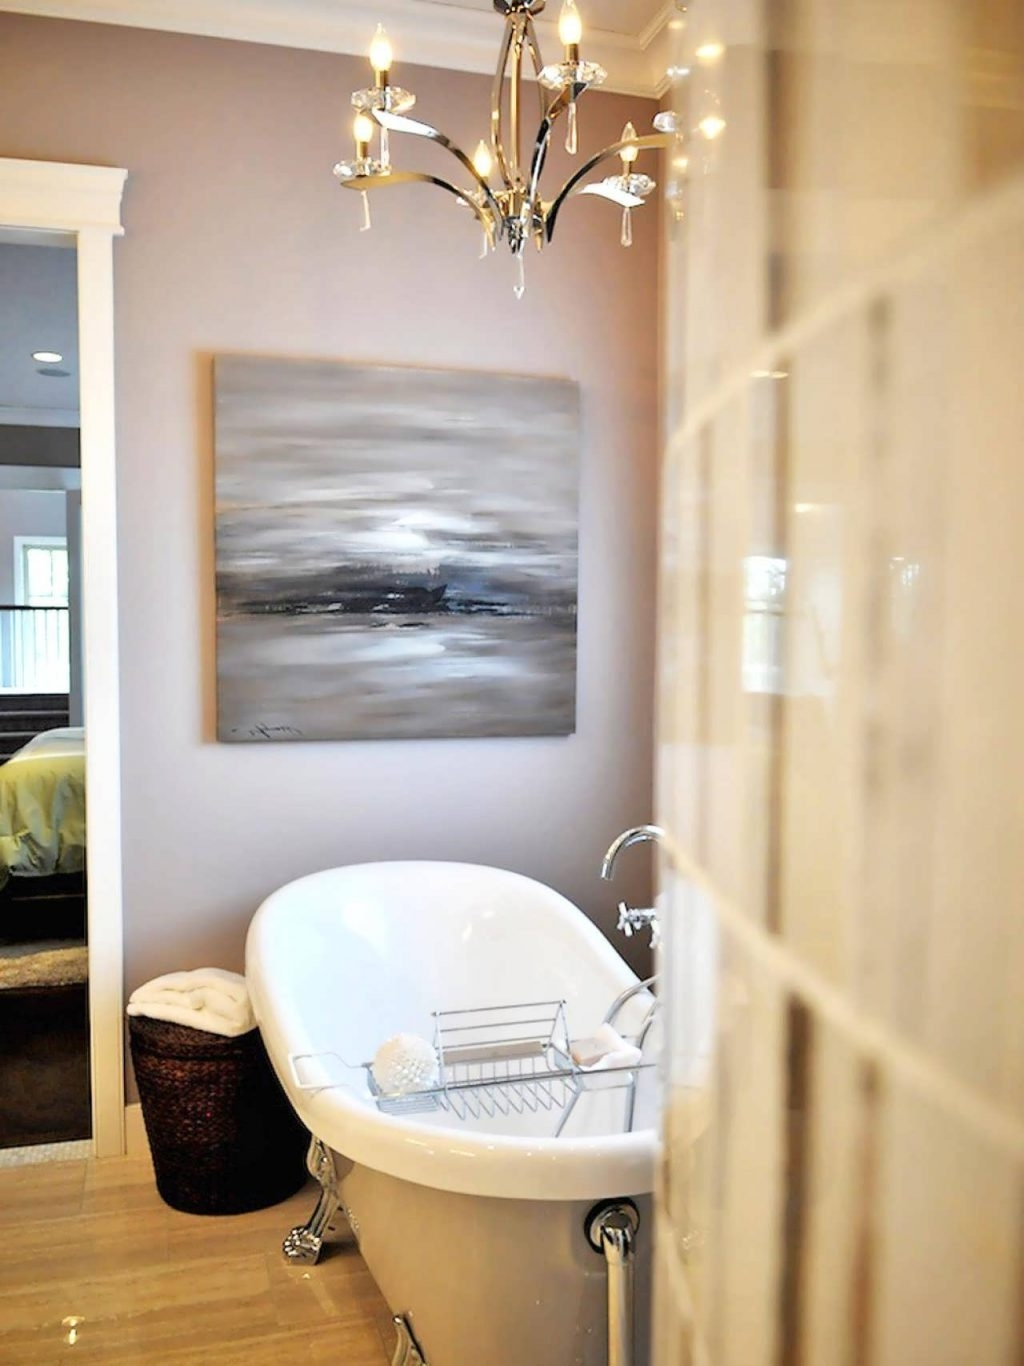 Bathroom Chandelier Lighting In Most Up To Date Bathroom Chandelier Lighting Ideas Modern Chandeliers In Small (View 16 of 20)